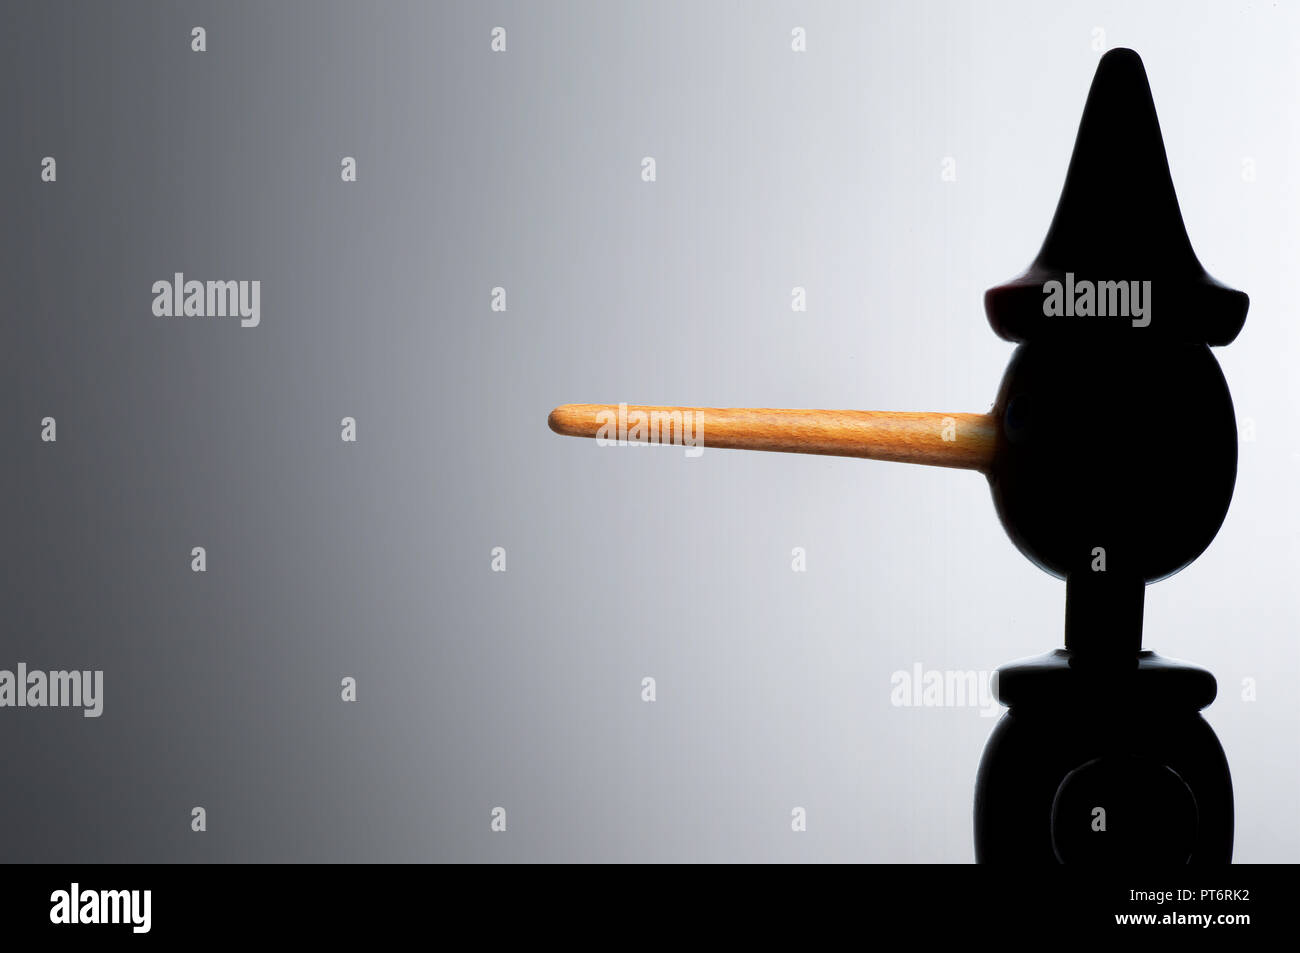 Concept Pinocchio Doll Figure in Silhouette, showing a Long Nose, Lie, Lying, Un trust wording - Stock Image